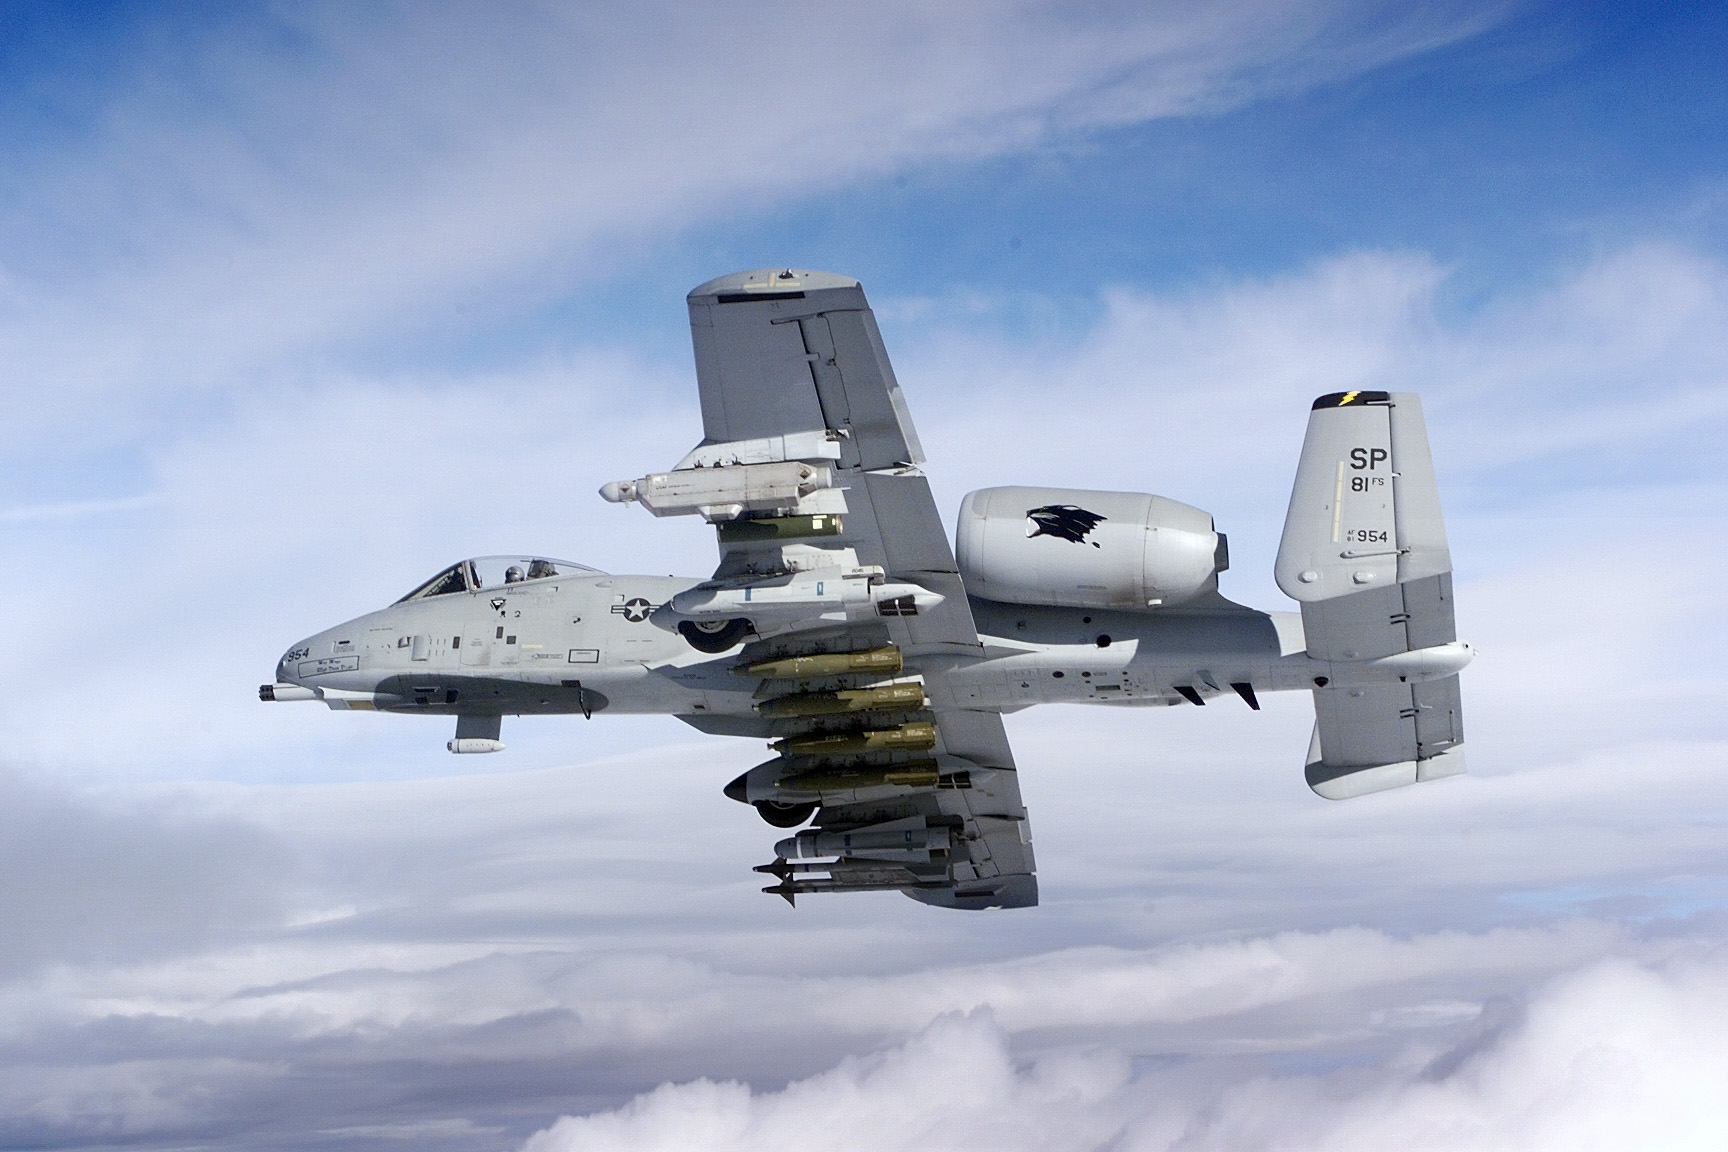 Fairchild Republic A-10 Thunderbolt II - Wikipedia, the free ...